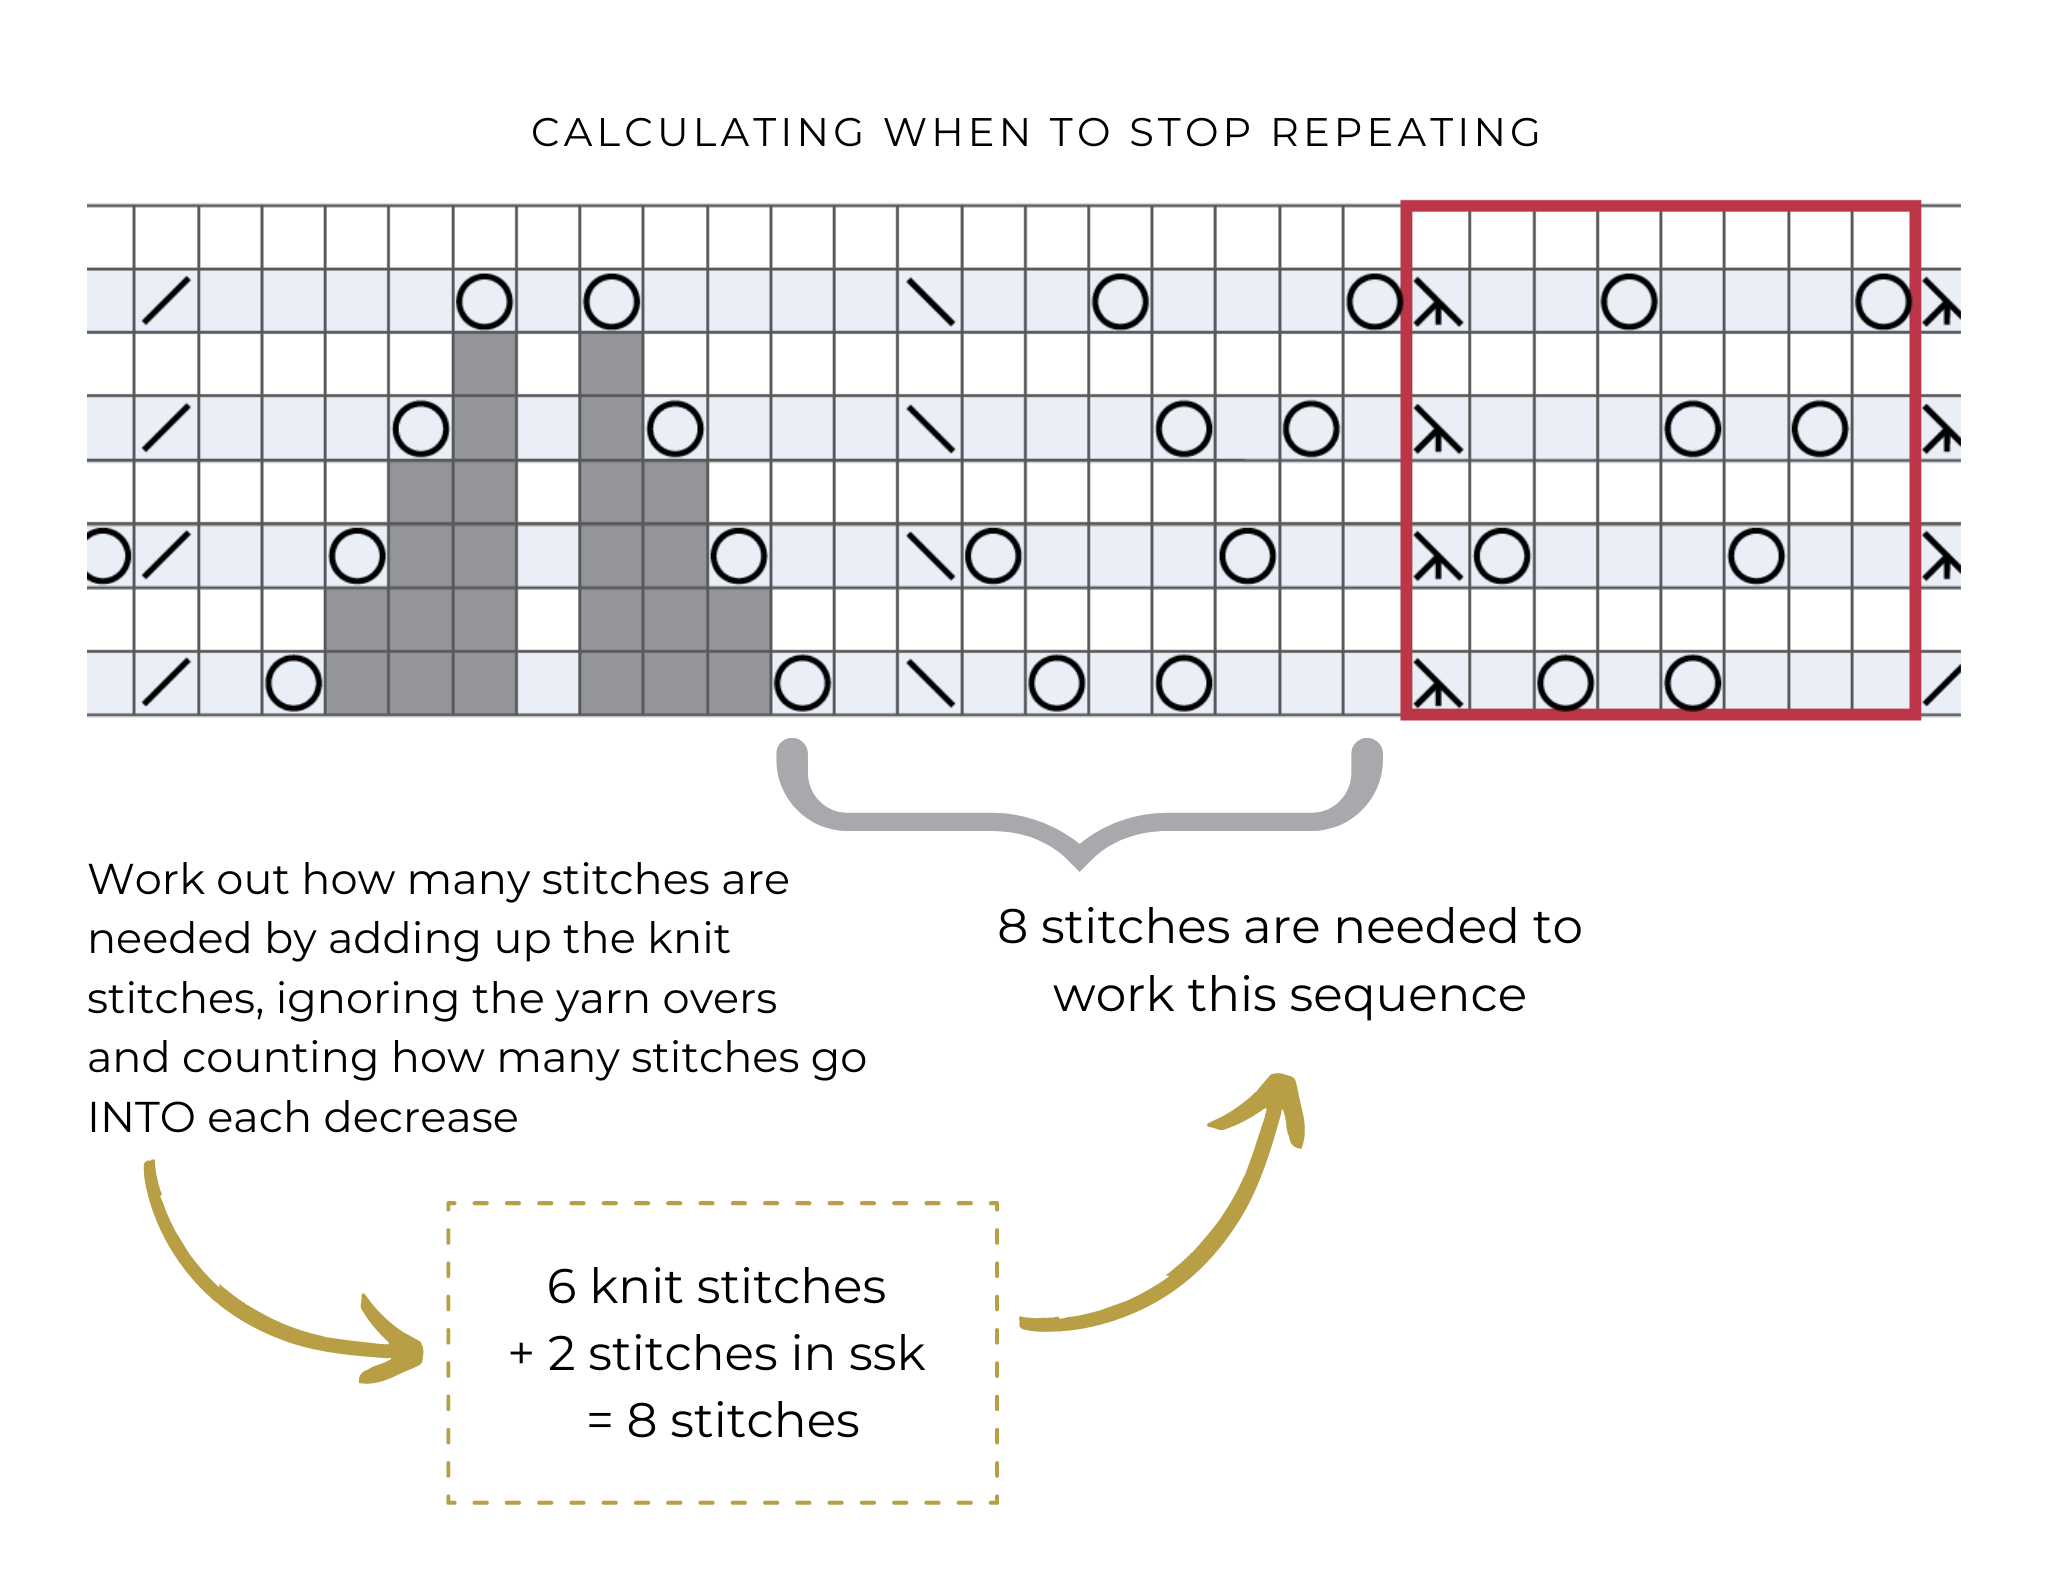 Work out how many stitches are needed by adding up the knit stitches, ignoring yarn over and counting how many stitches go into each decrease